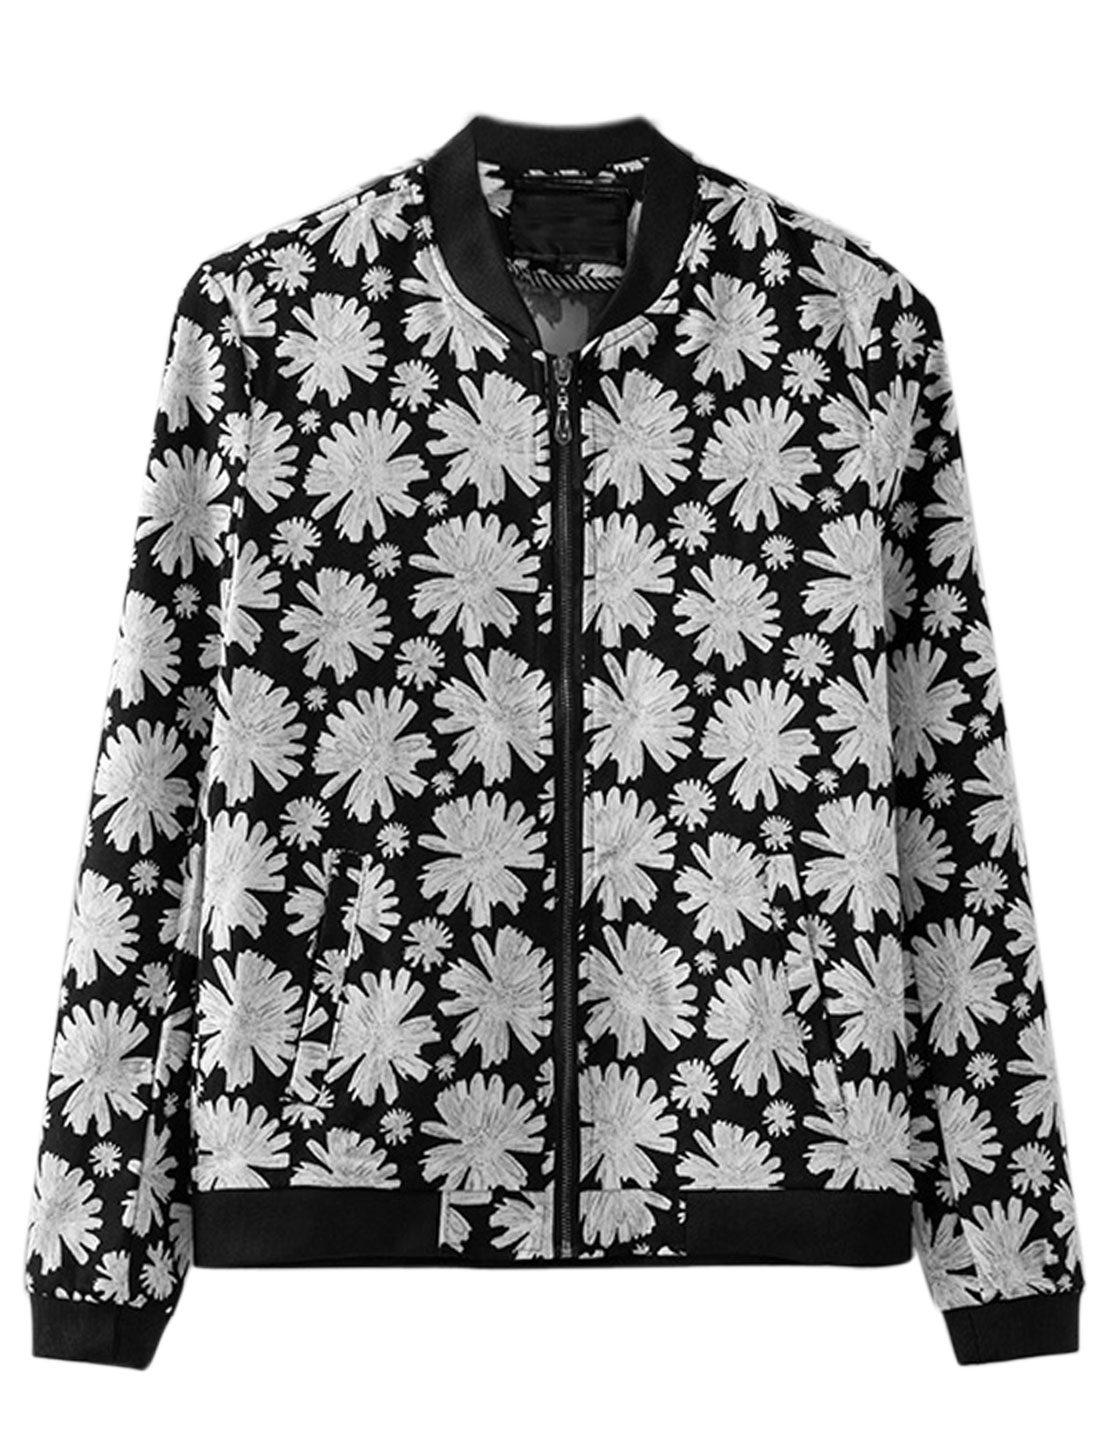 Men Stand Collar Long Sleeve Floral Prints Casual Jacket Black S